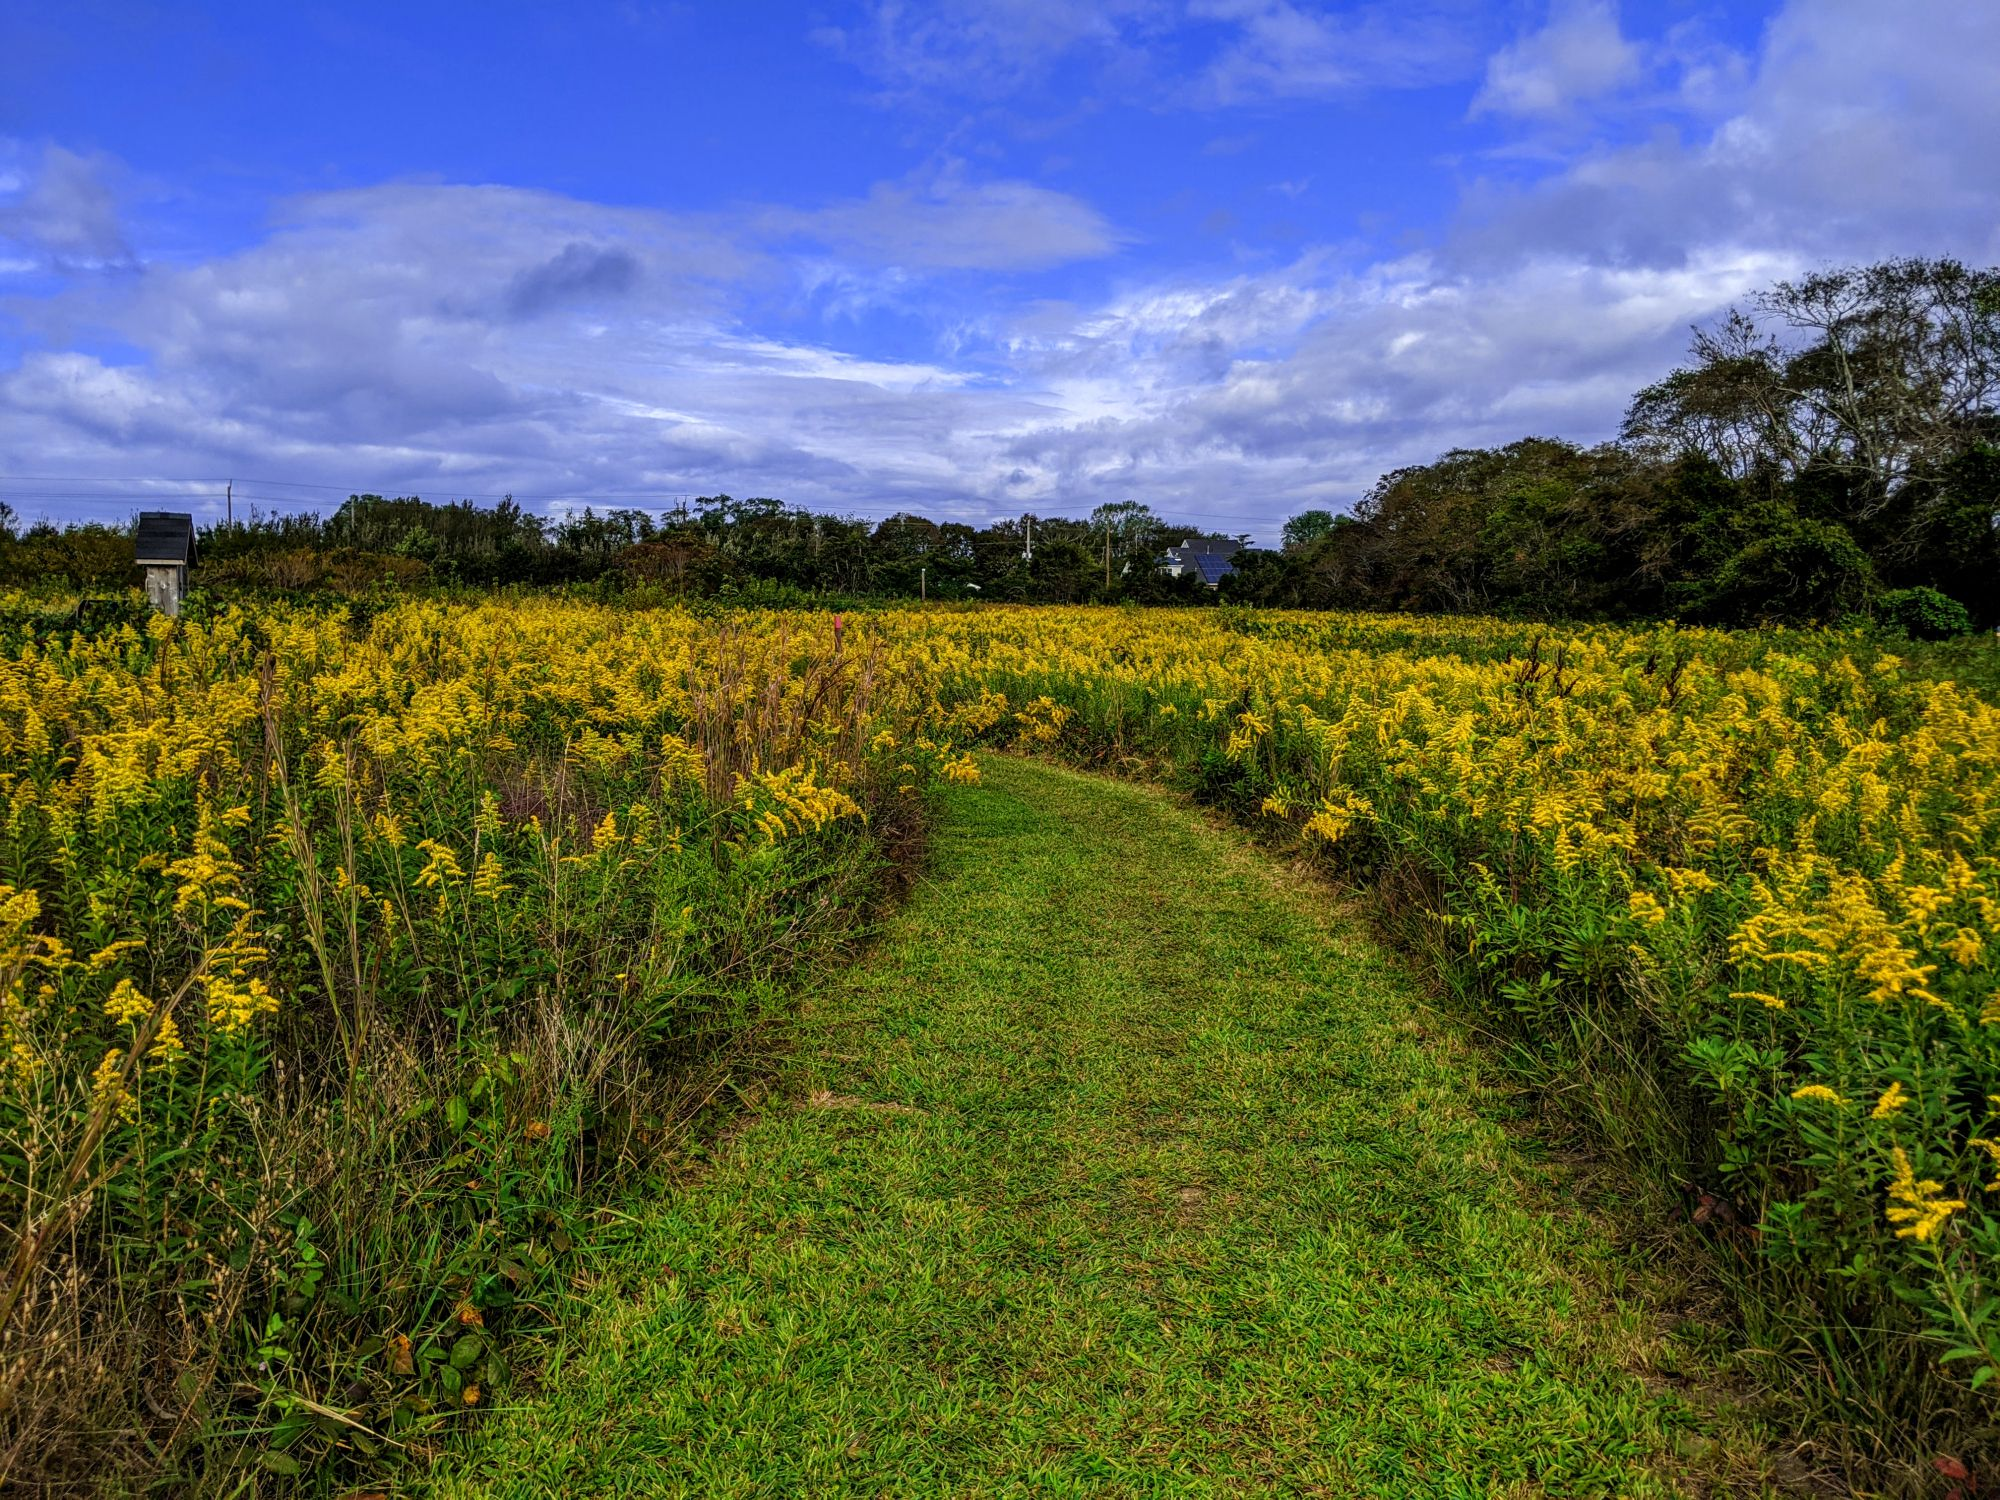 Nature trail through goldenrod field.